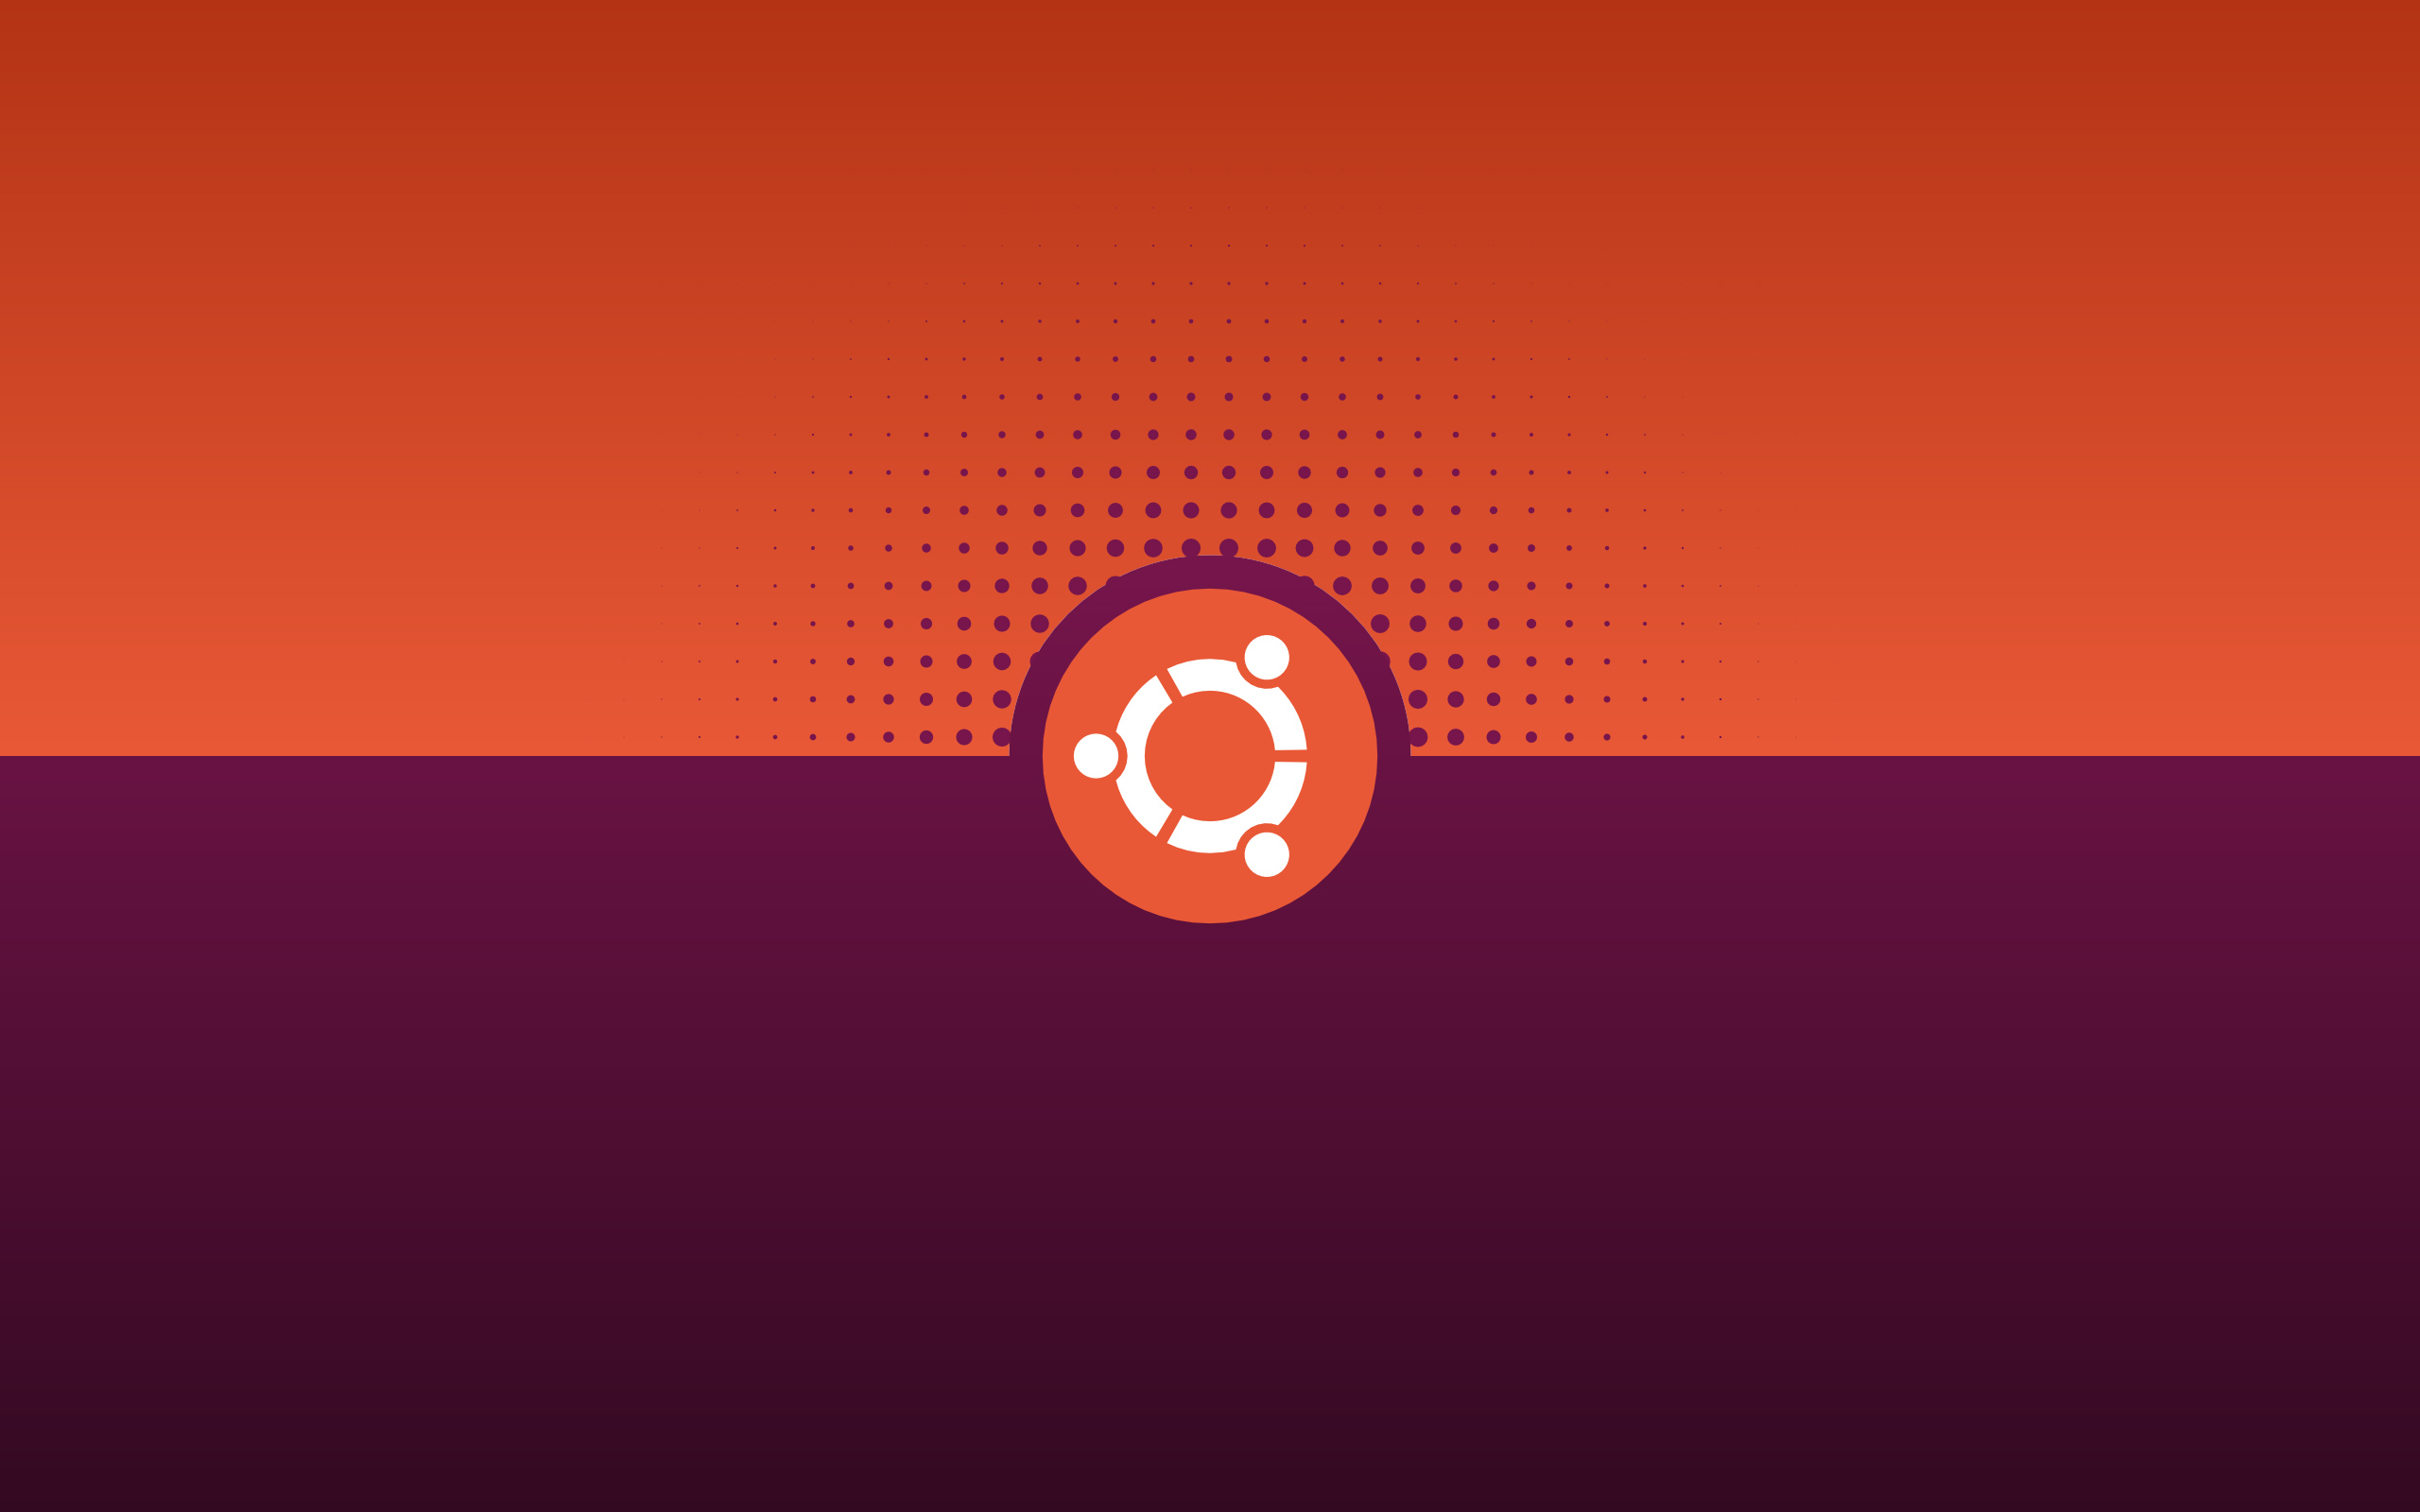 Simple Ubuntu Wallpaper